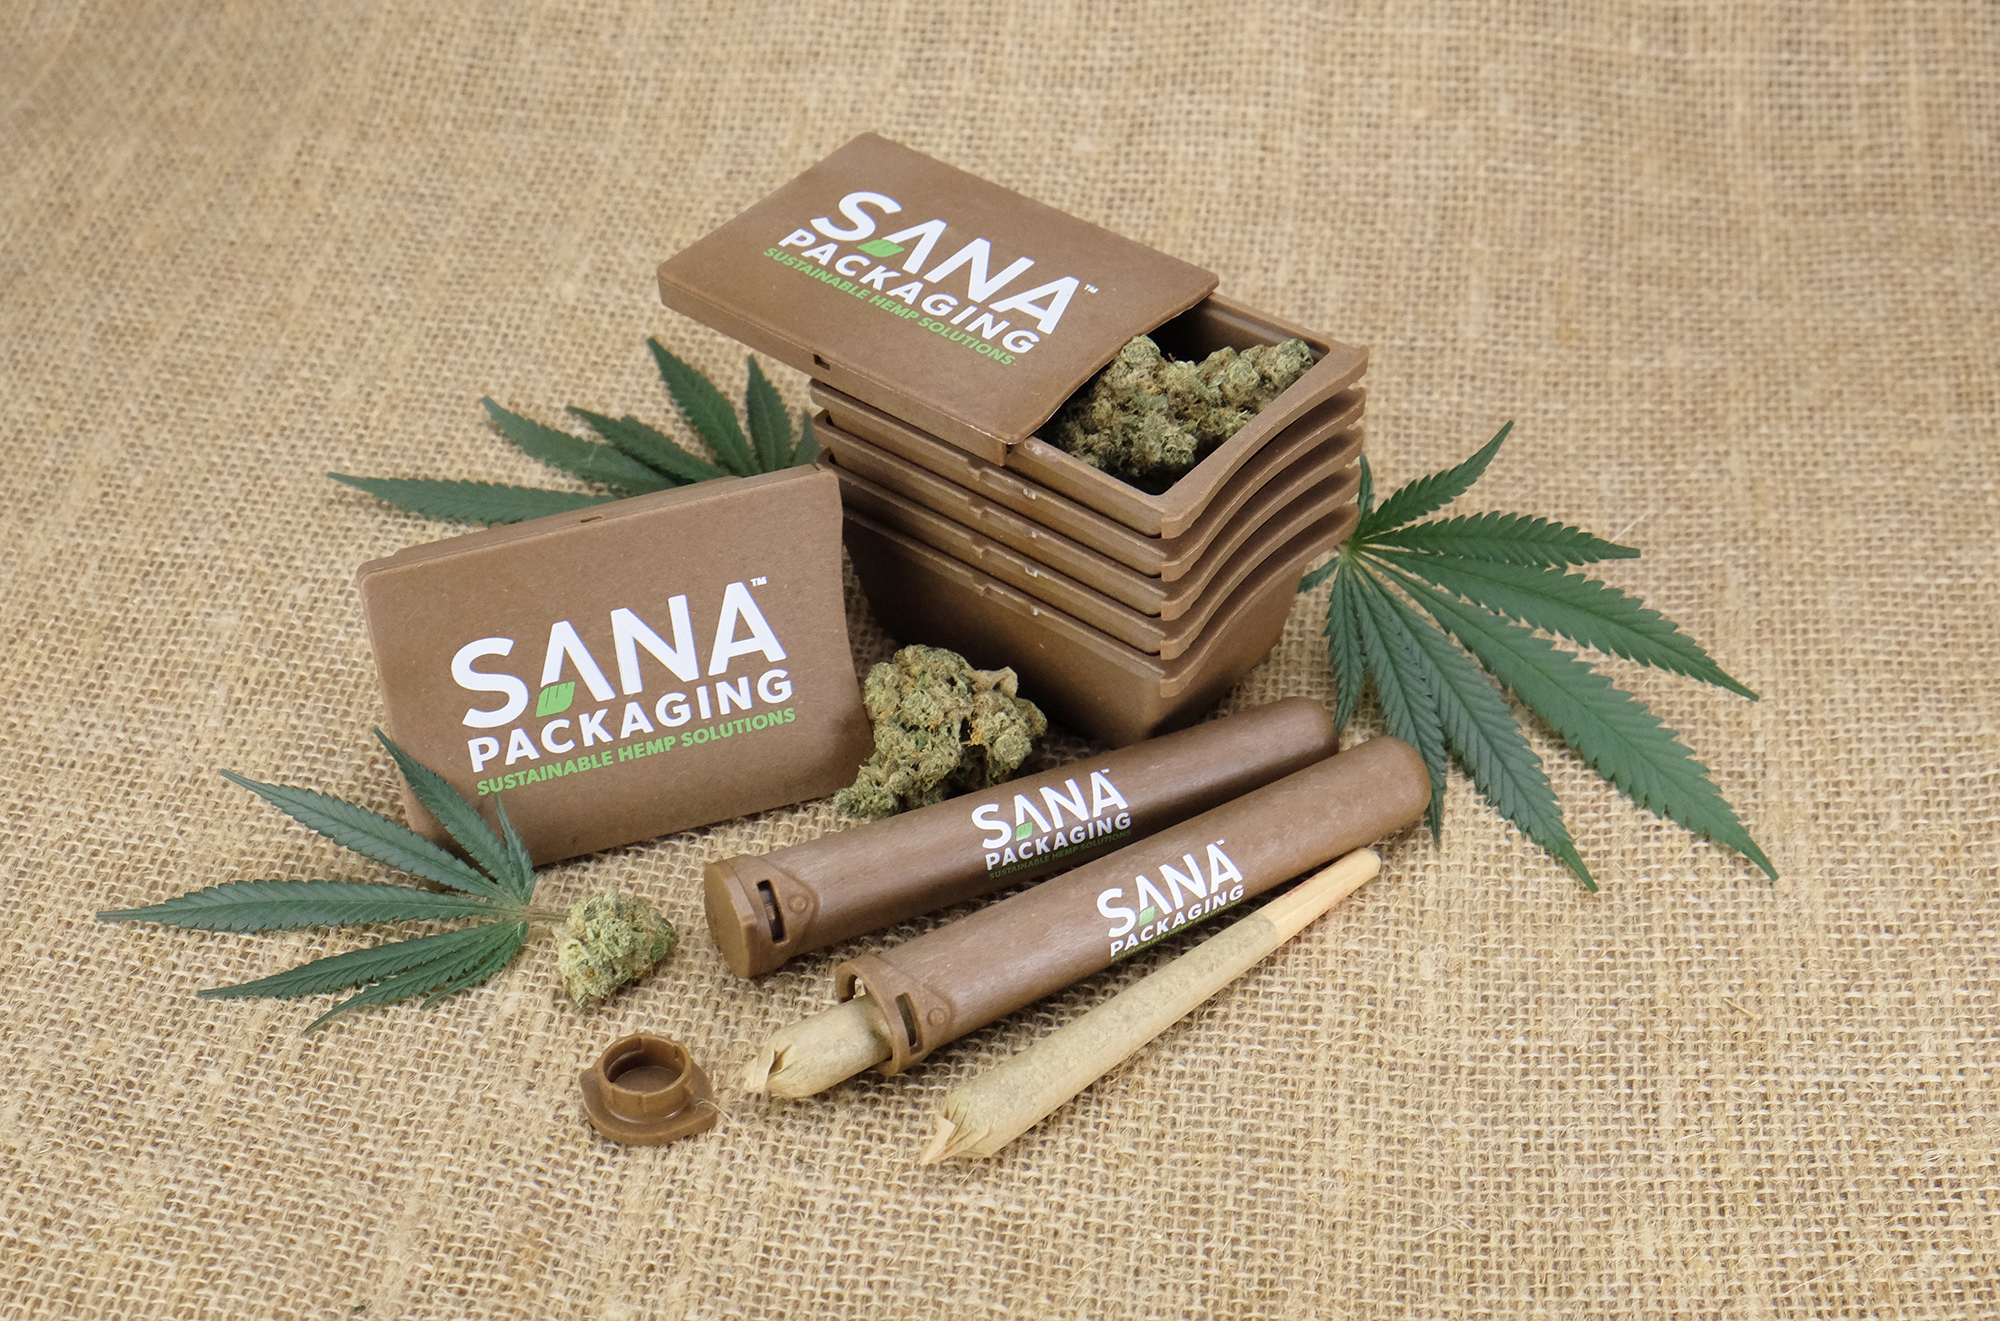 CCT Leaders: Sana Packaging